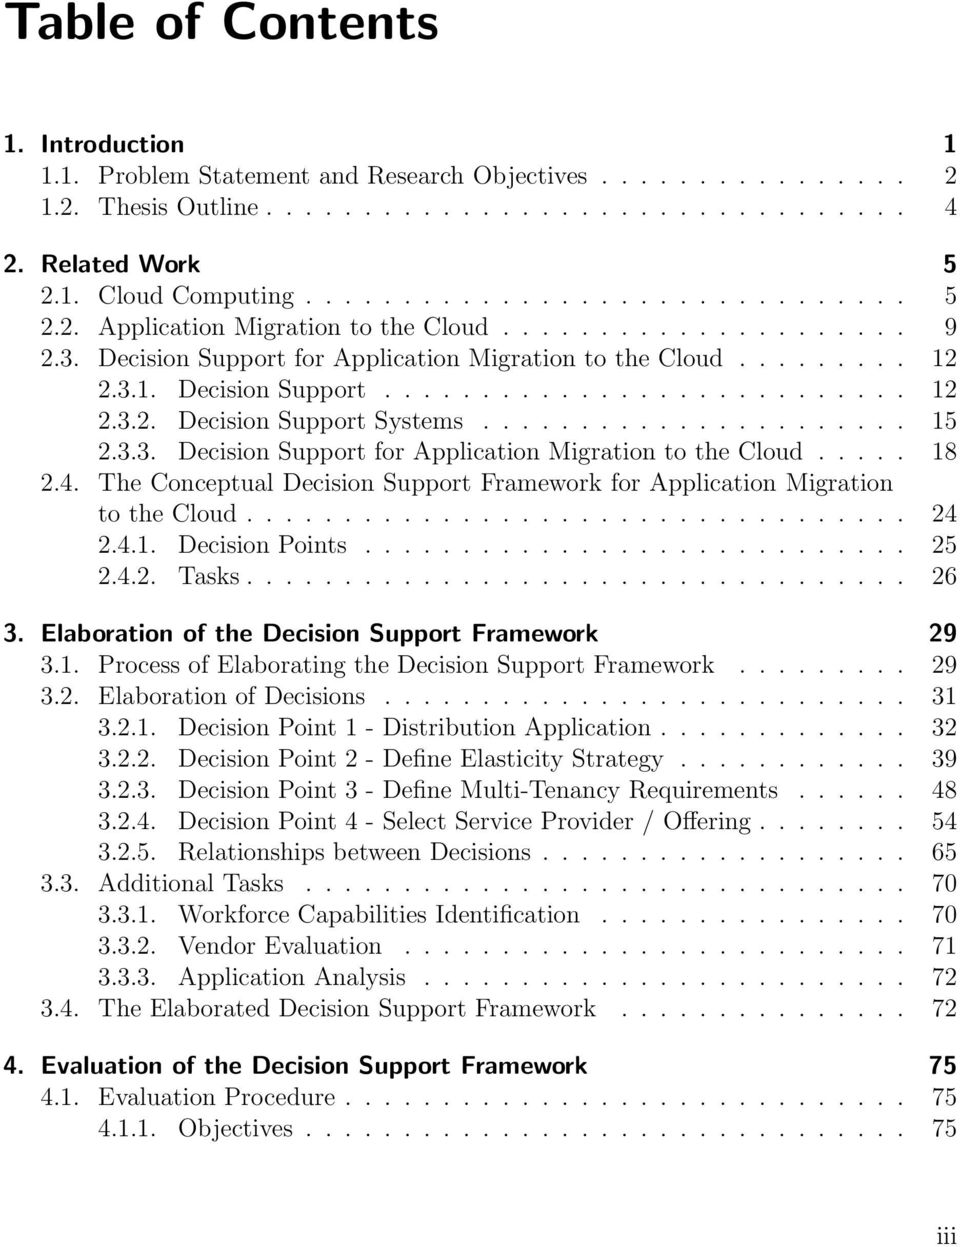 3.3. Decision Support for Application Migration to the Cloud..... 18 2.4. The Conceptual Decision Support Framework for Application Migration to the Cloud.................................. 24 2.4.1. Decision Points.